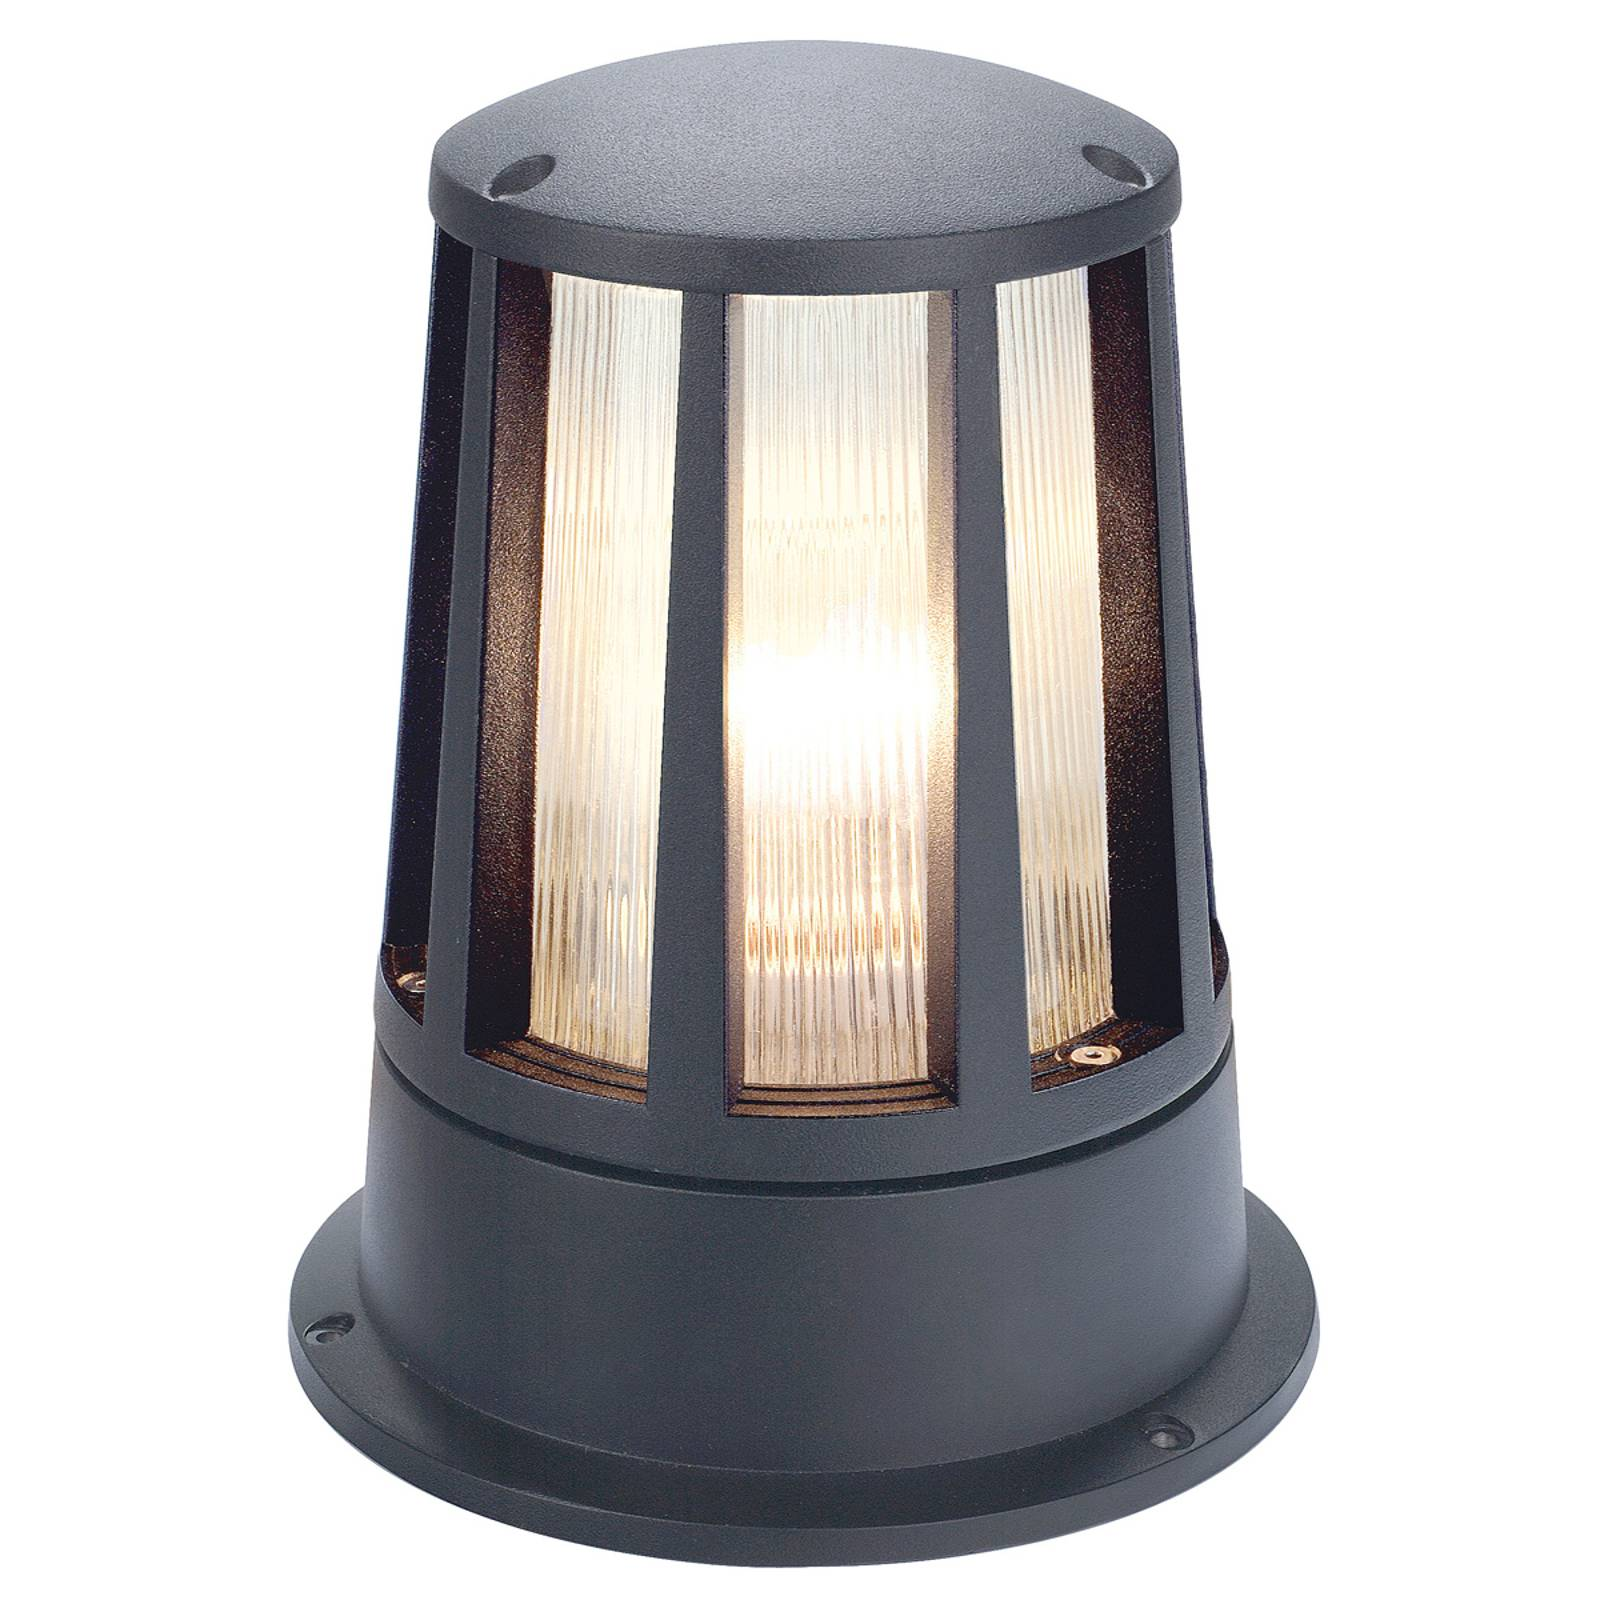 Cone Pillar Light in Anthracite IP54 from SLV